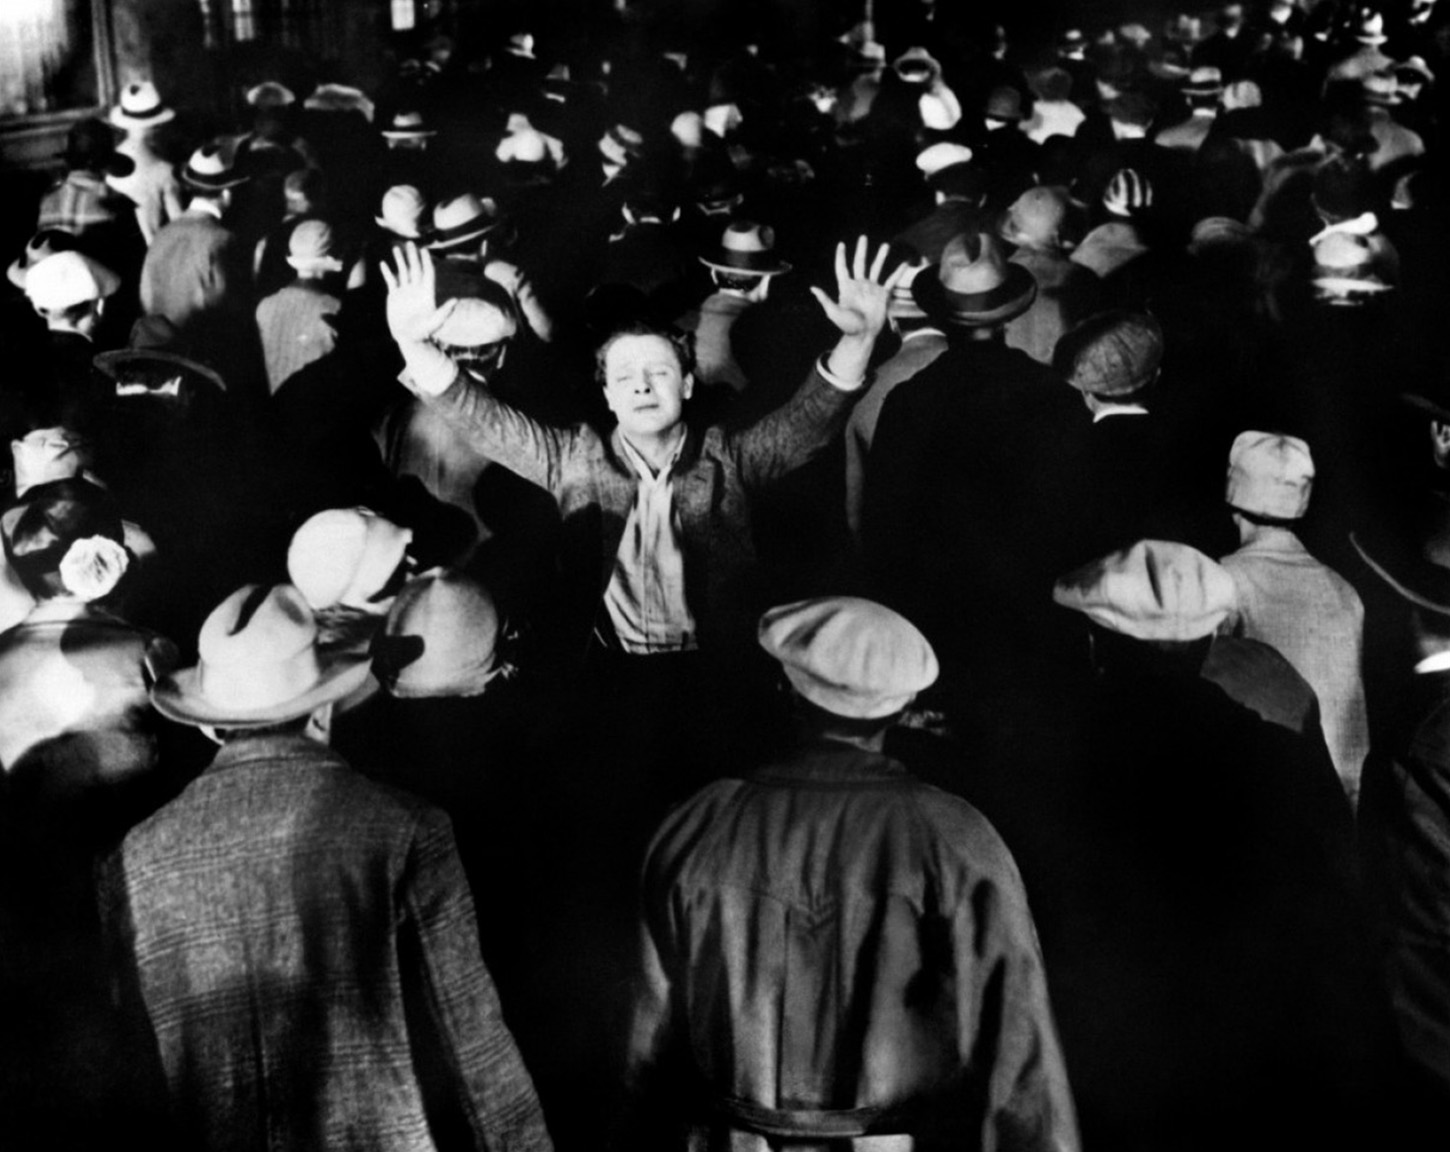 King Vidor's The Crowd (1928)